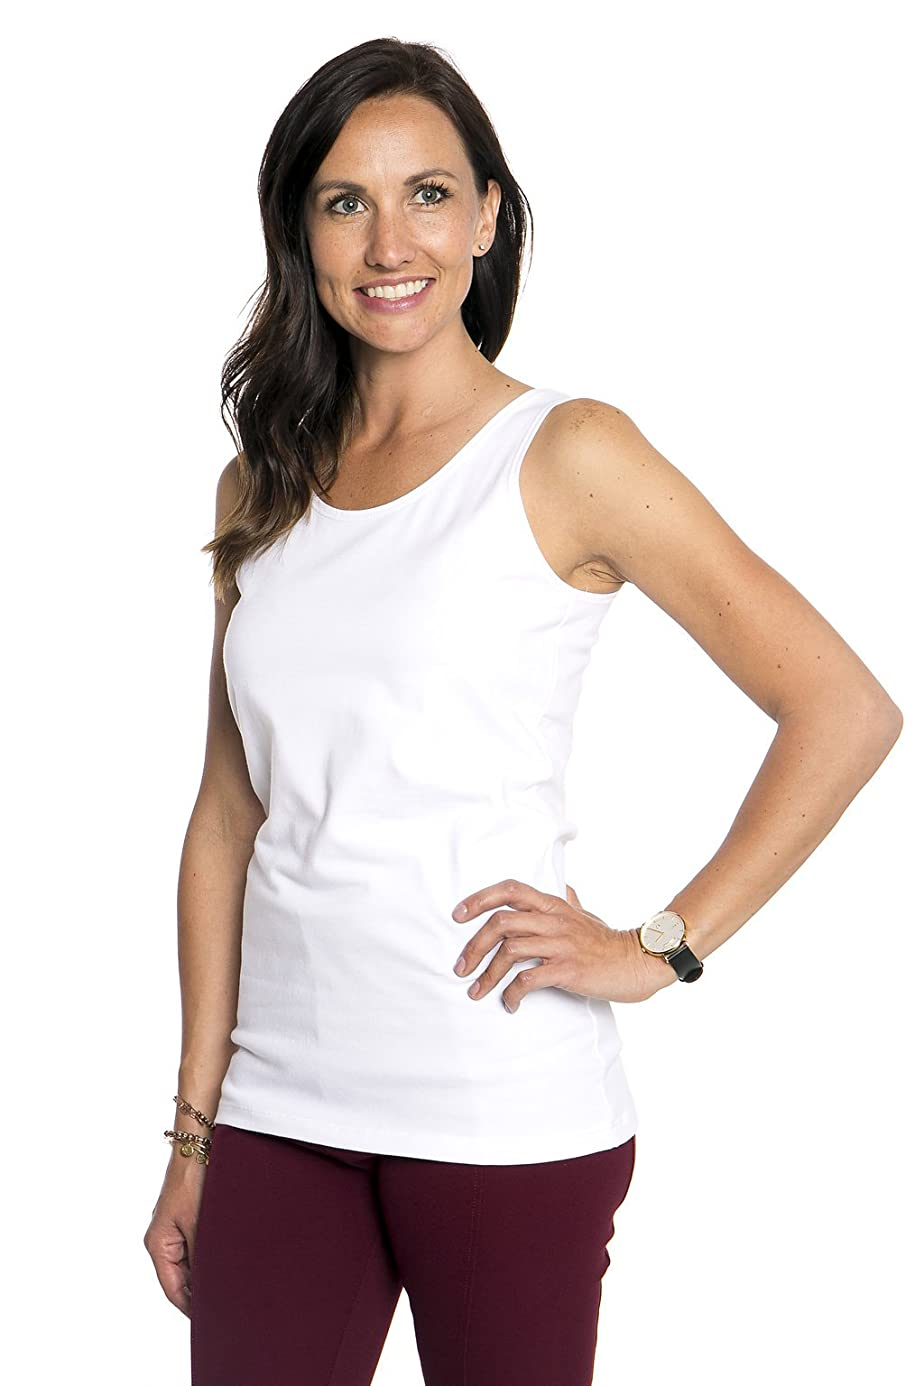 Heirloom Tank Top USA Made for Women Thick Strap Comfortable Layering Shirt Dressy Or Active Wear